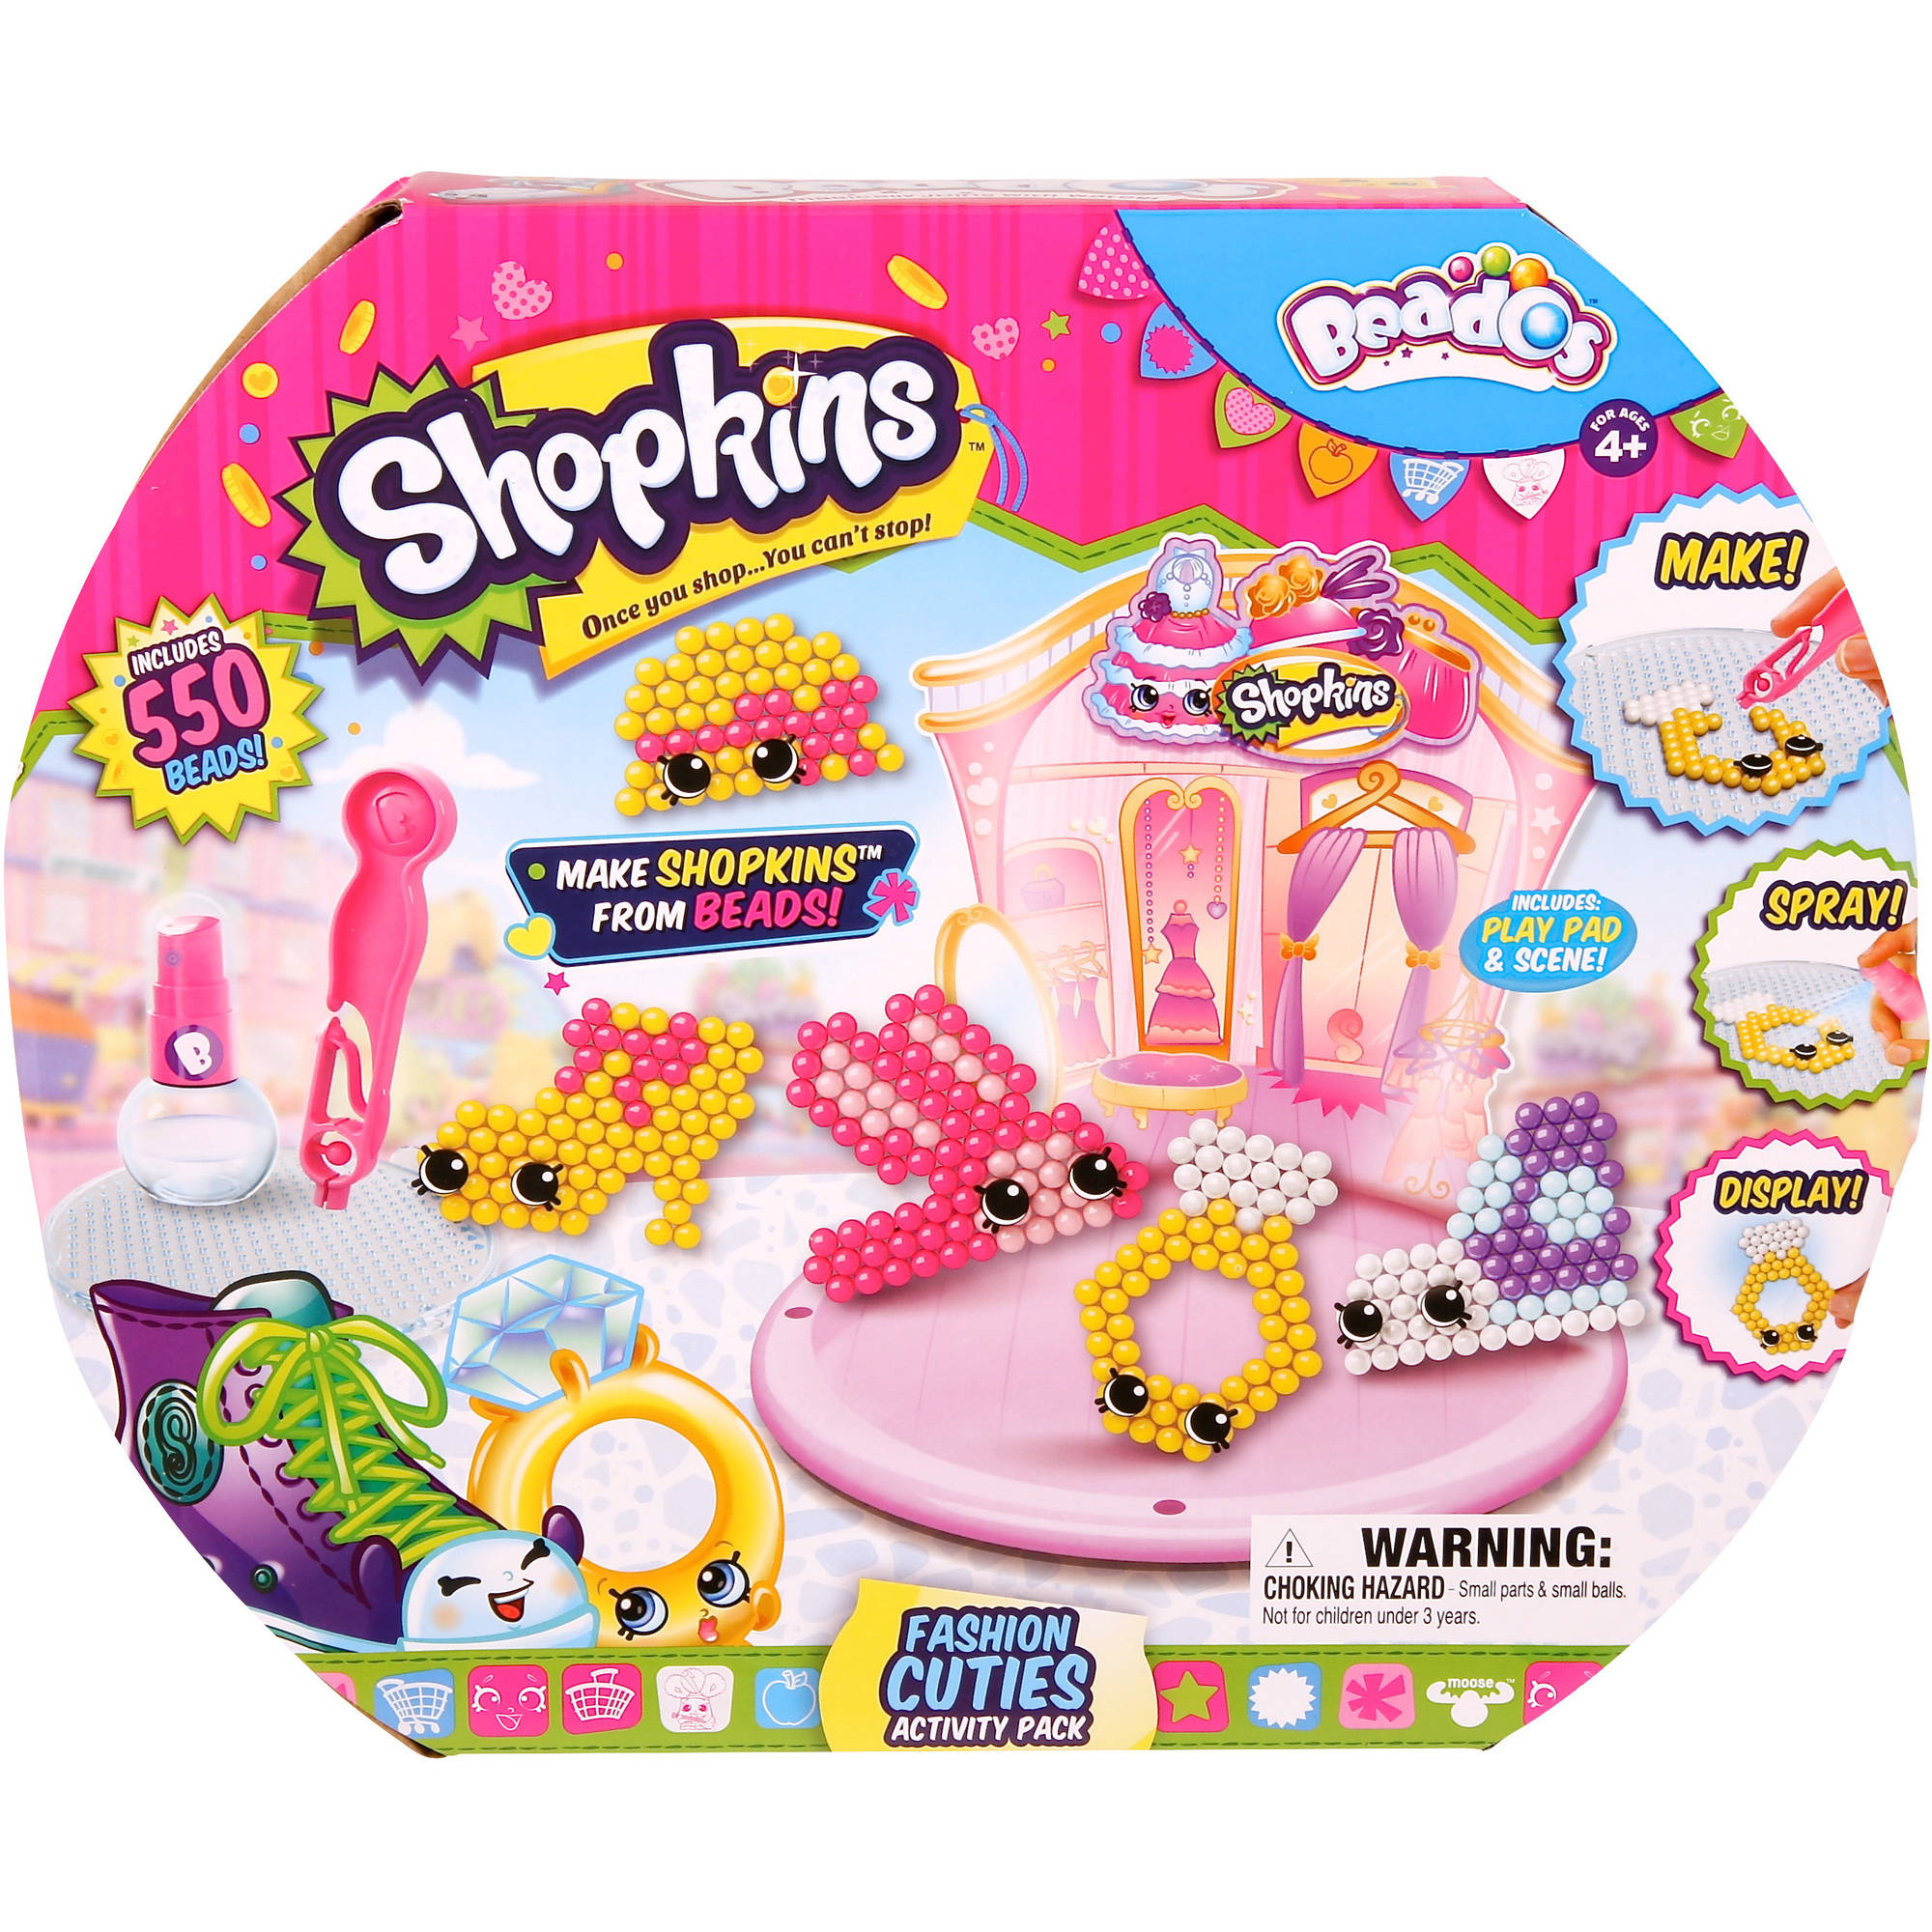 Moose Toys Beados Shopkins Season 3 Activity Pack, Bakery